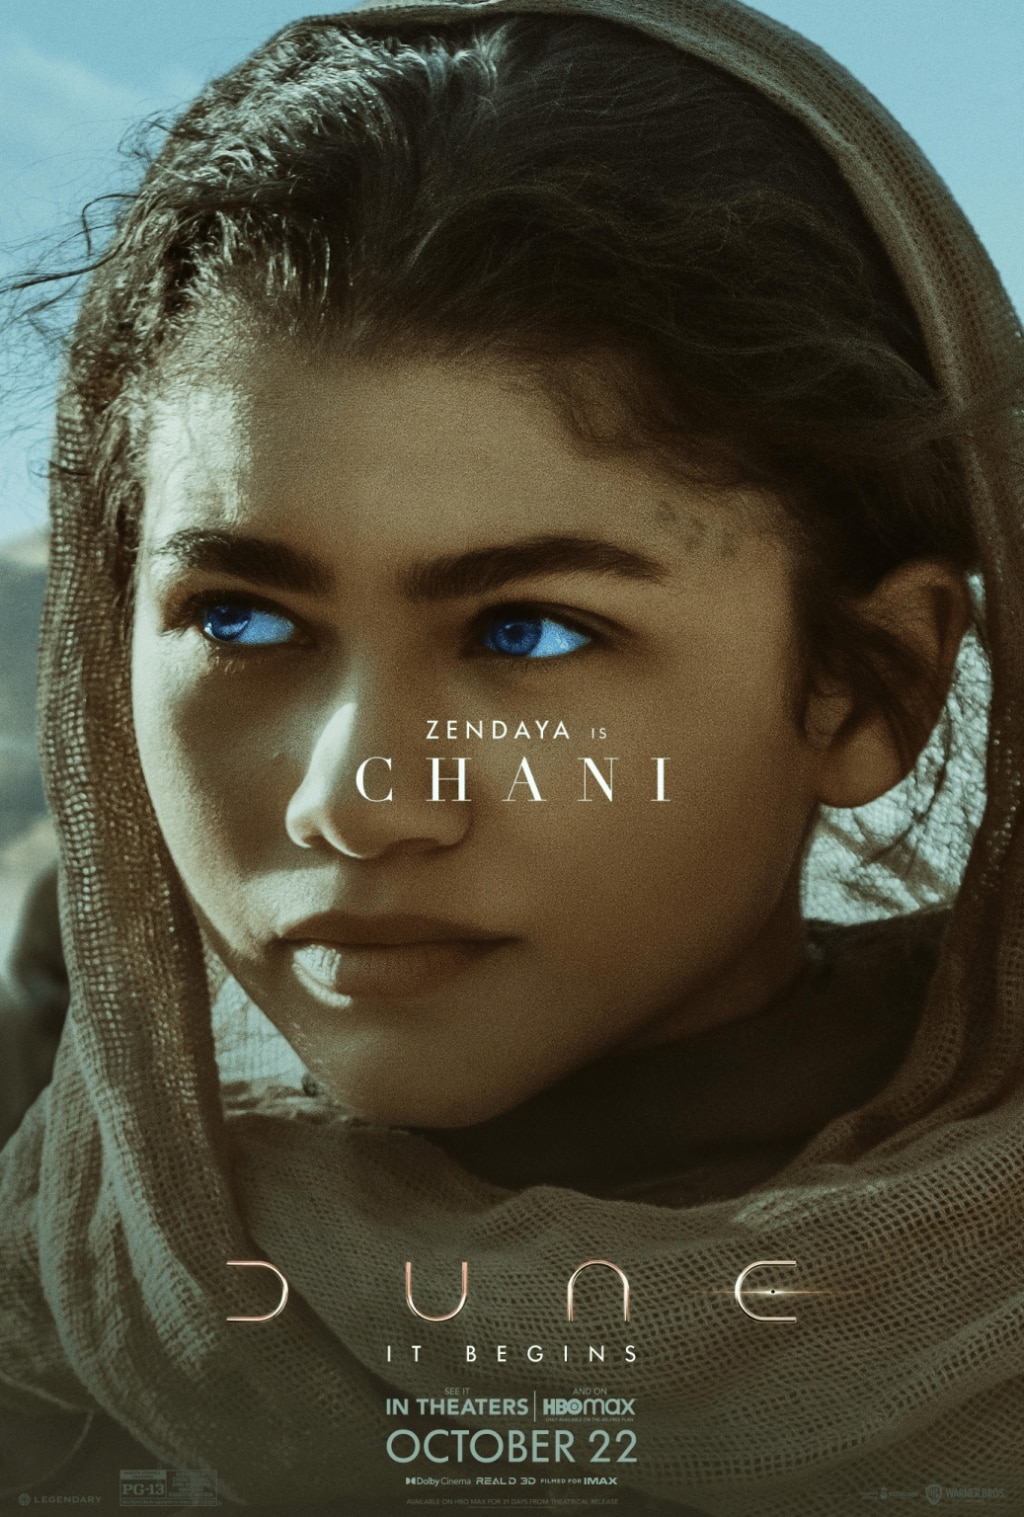 dune poster 1 1024x1517 - Check Out This Stunning Set of Character Posters for DUNE